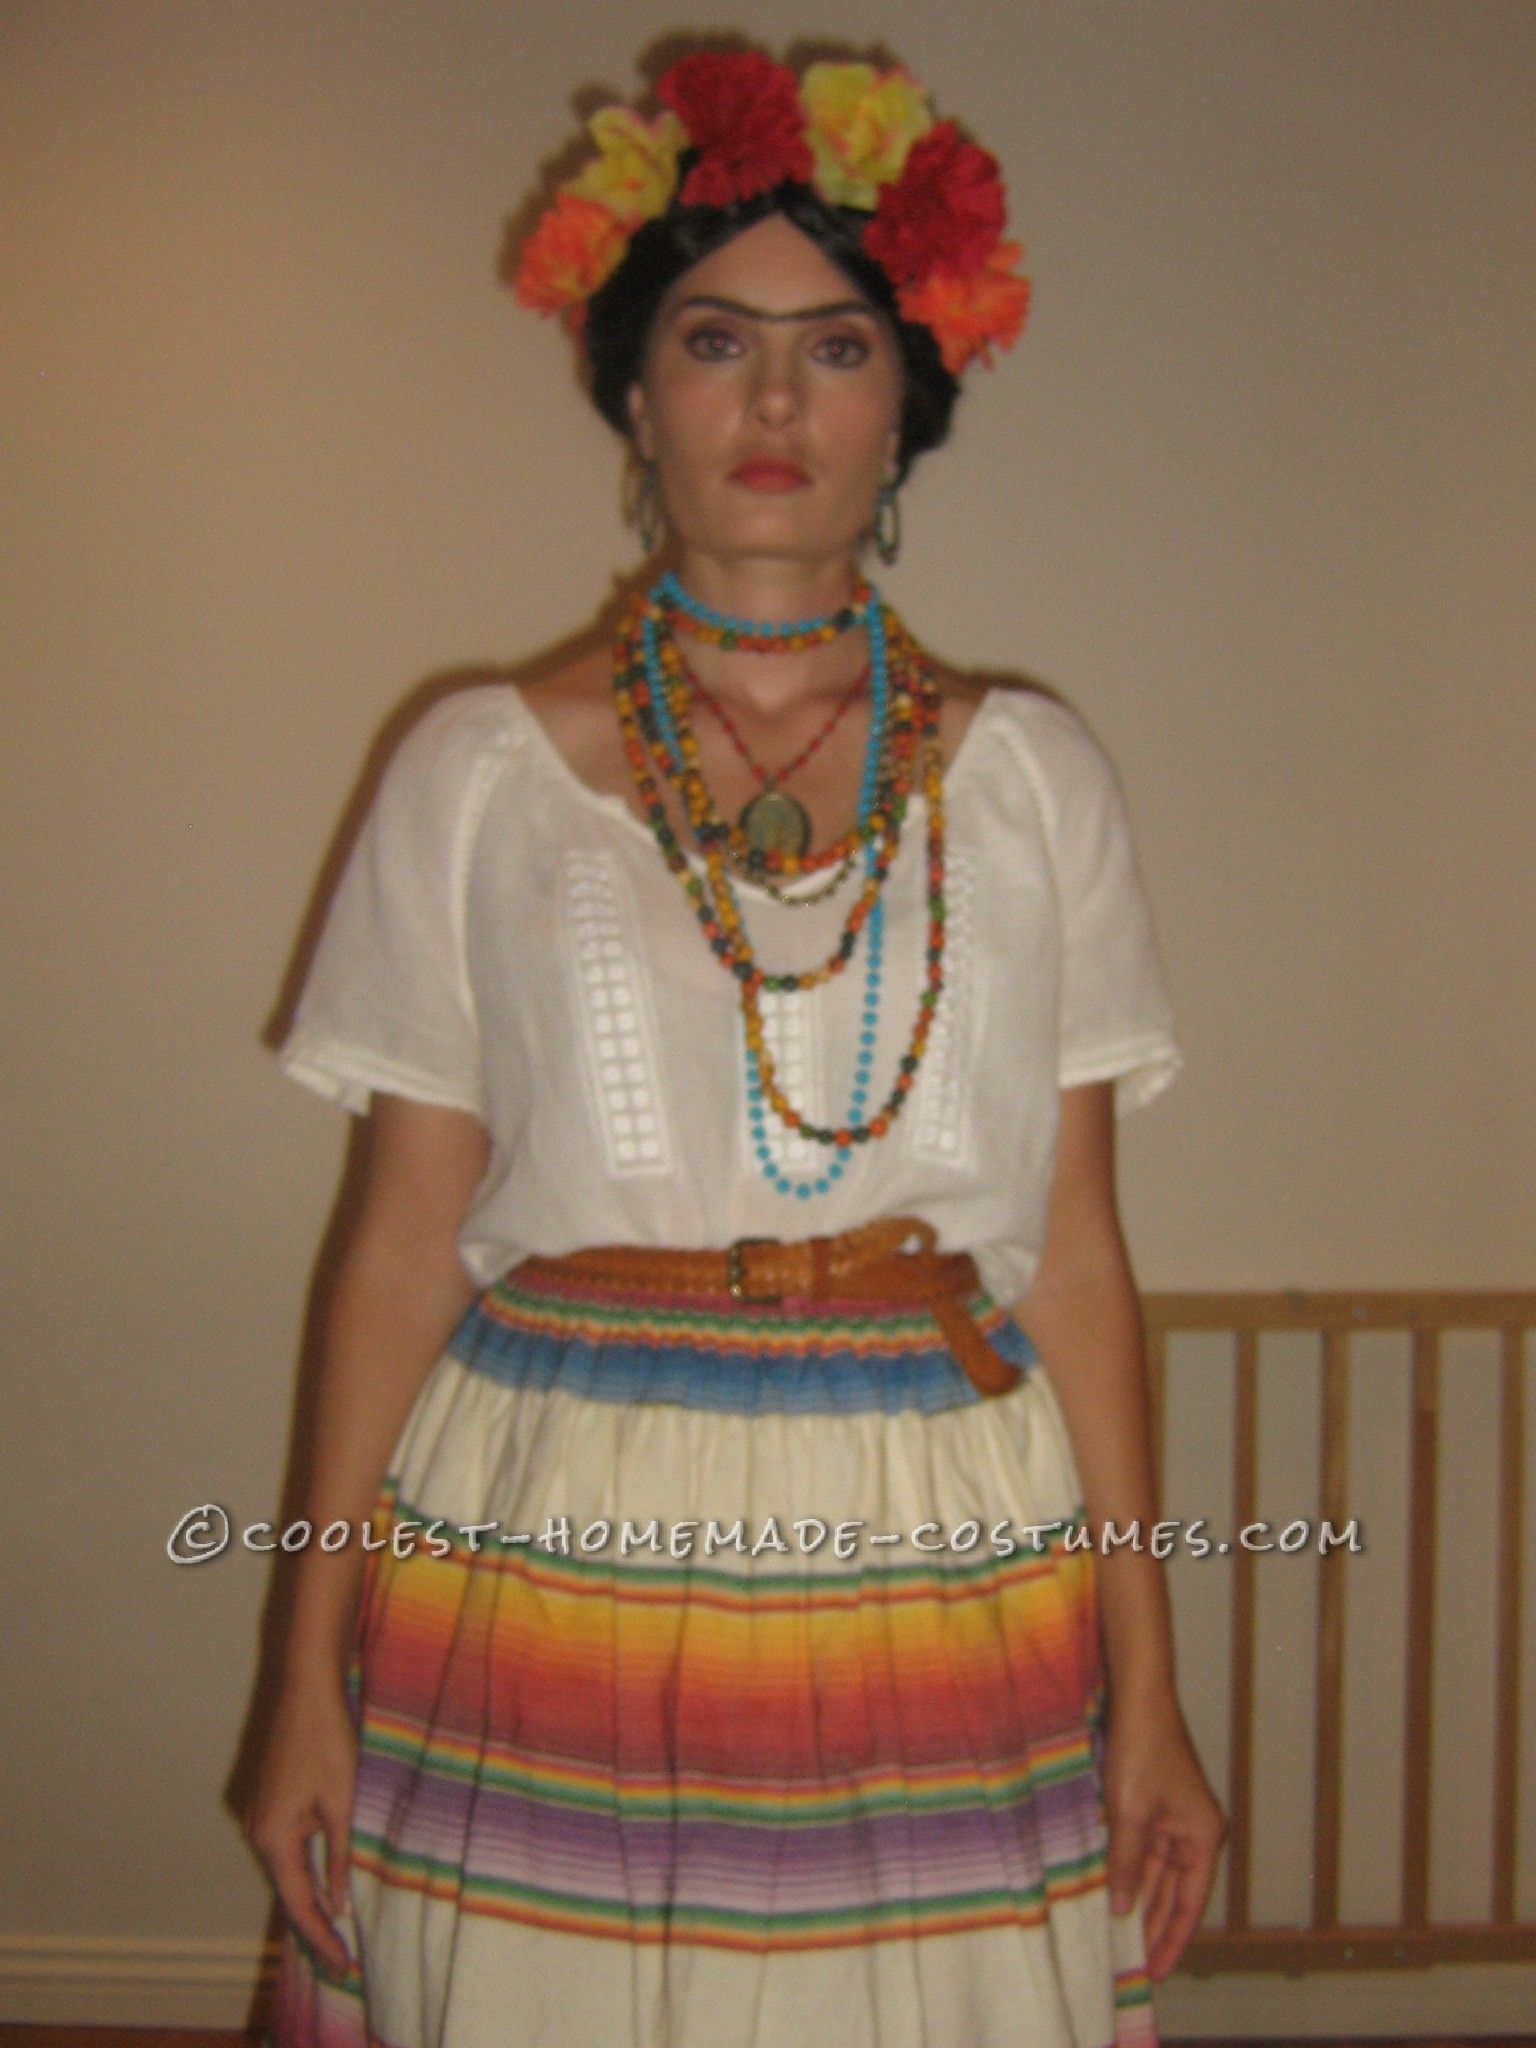 Easy Homemade Frida Kahlo Halloween Costume - so cool